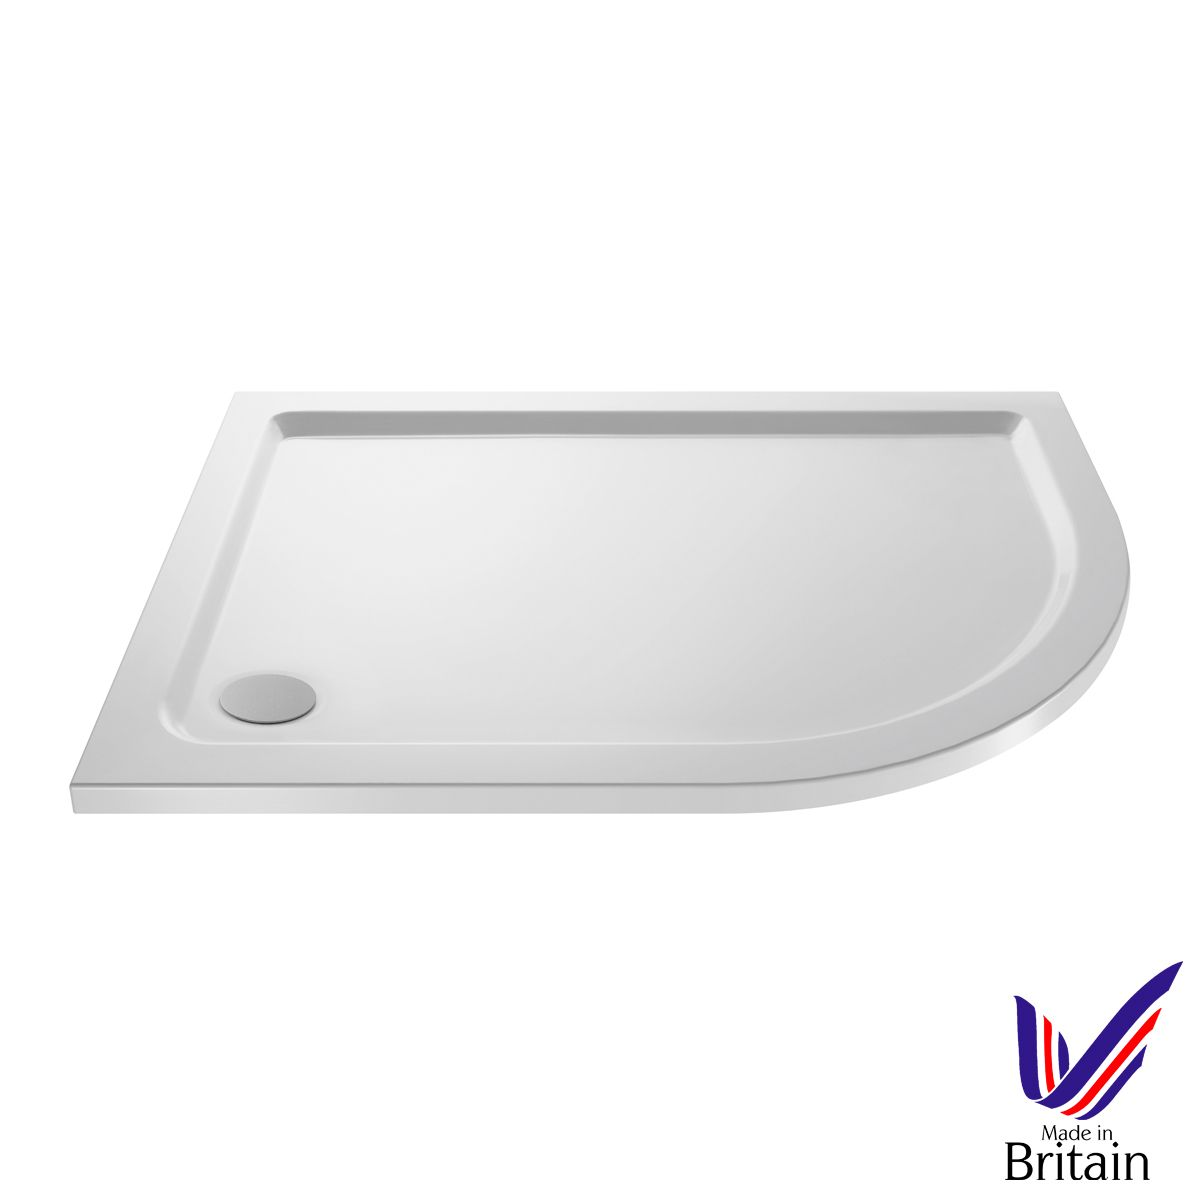 1000 x 900 Shower Tray Offset Quadrant Low Profile Right Hand by Pearlstone